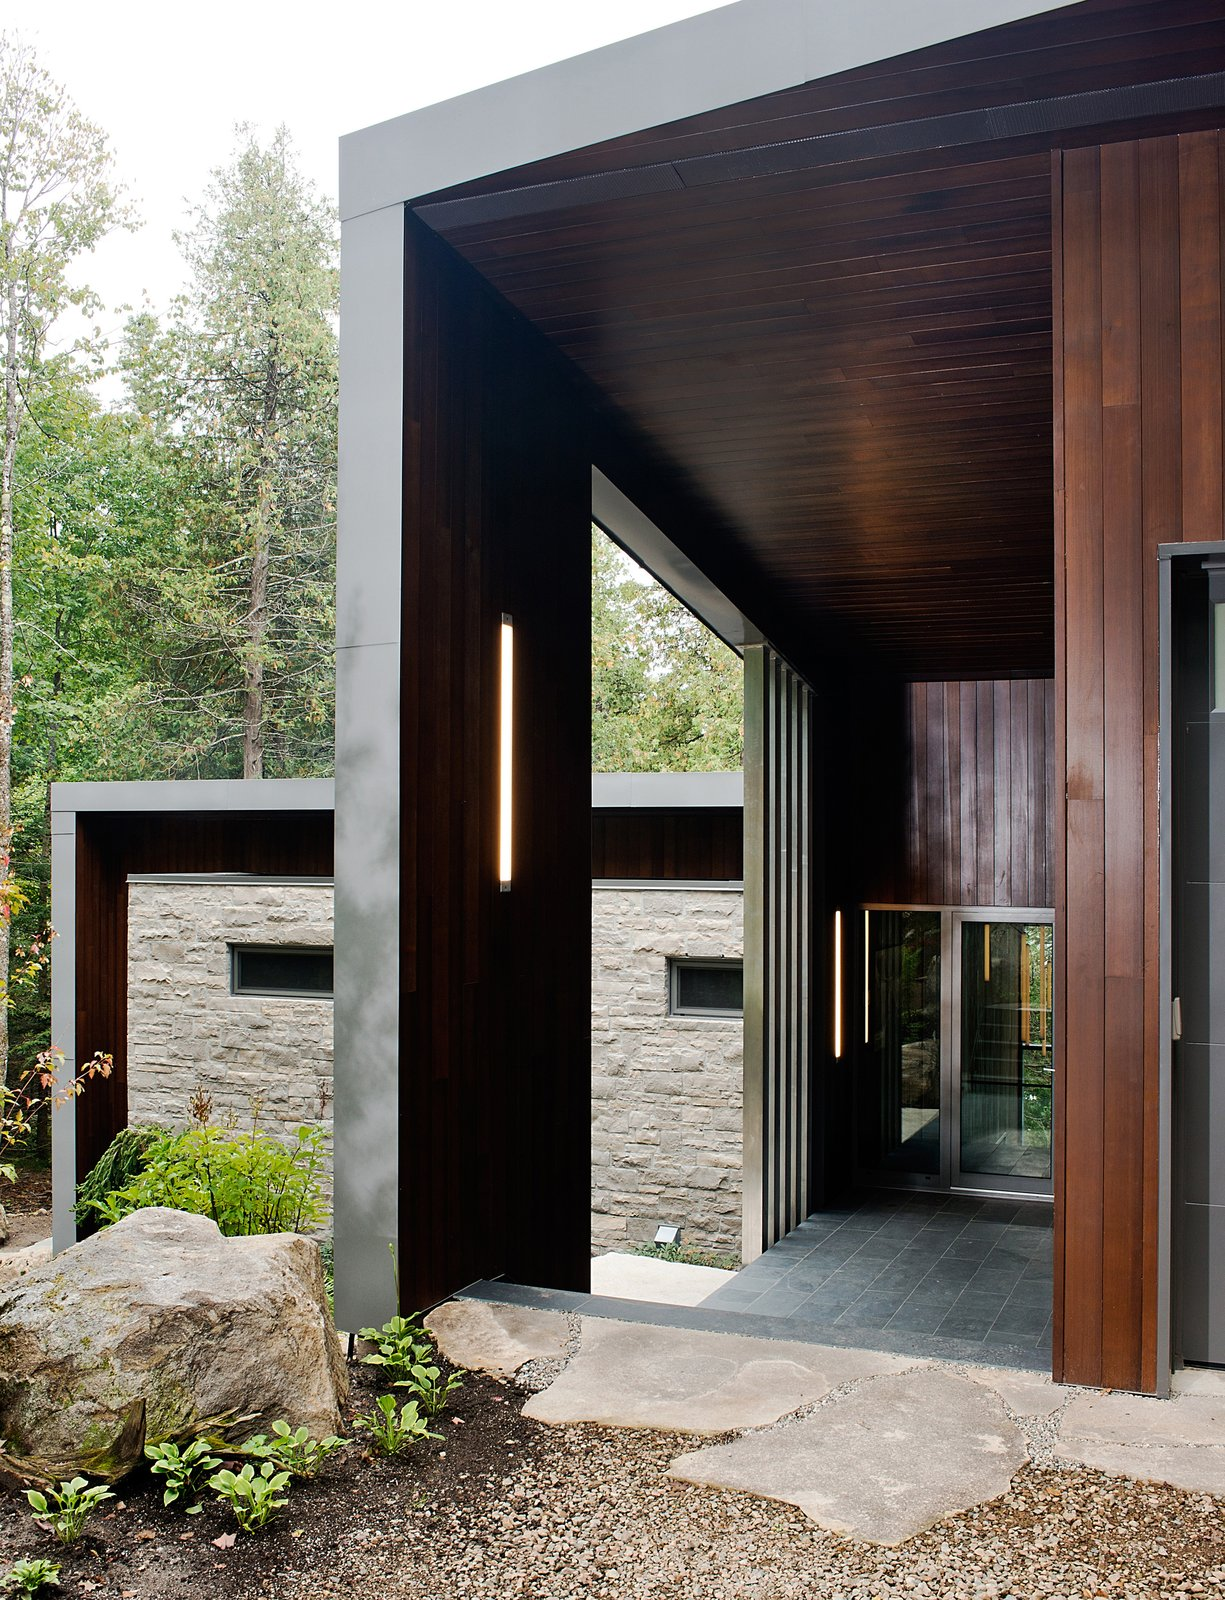 Tremblay chose materials that would reflect the natural setting, like the Polylam-C cedar siding from Prorez, used at the home's entrance. The exterior floor finish is Montauk grey slate.